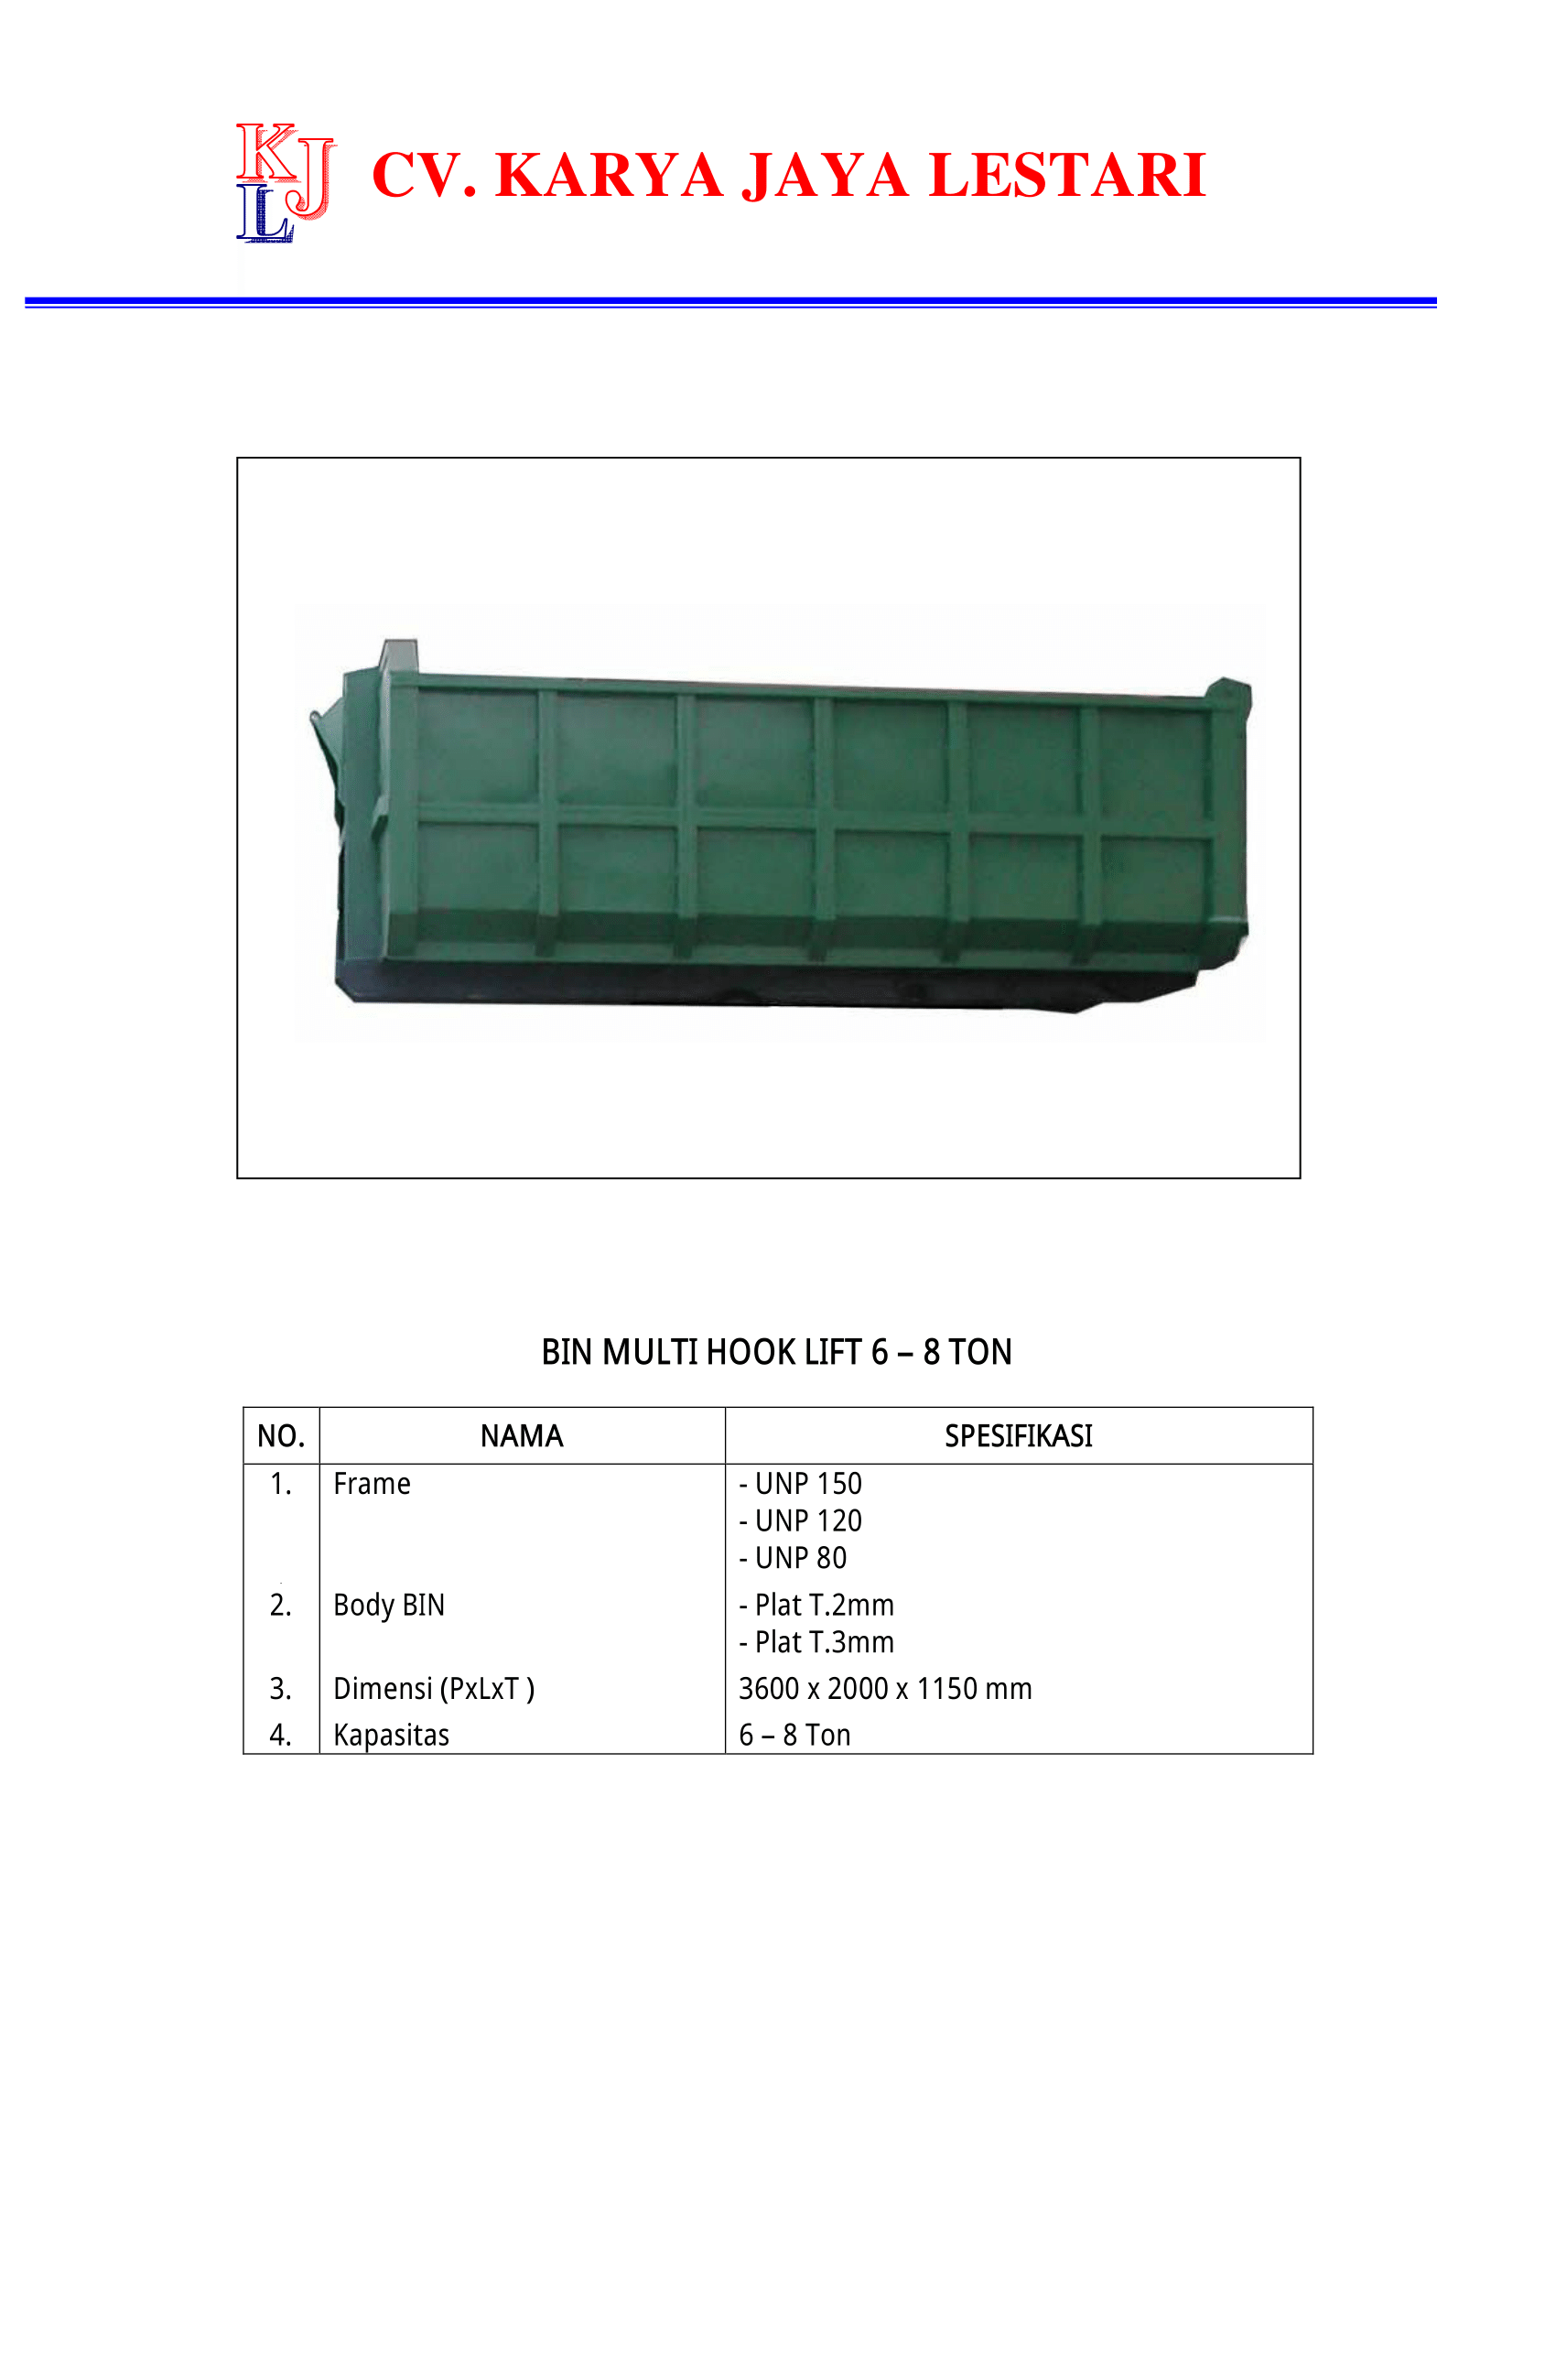 bin-multi-hook-lift-6-8t-1